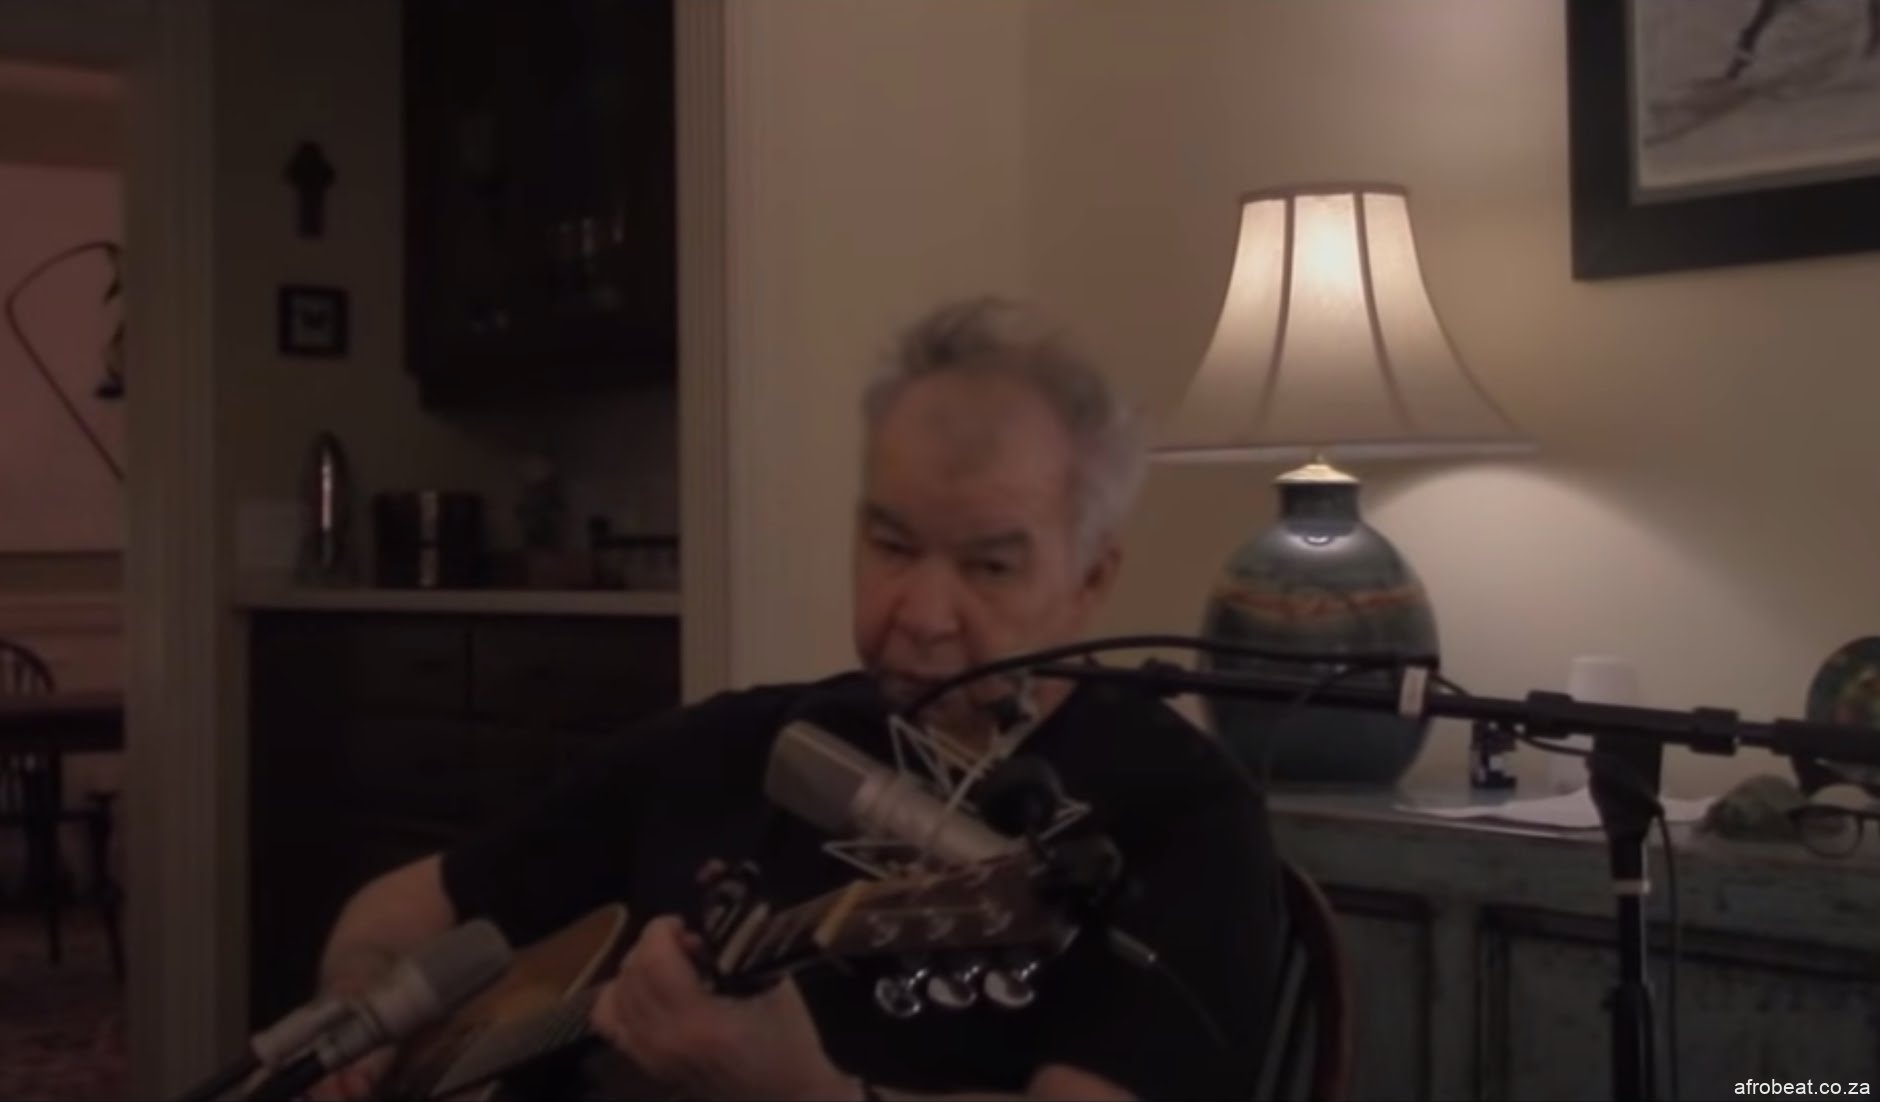 JohnPrineIRememberEverything - Watch Late John Prine's Video for Final Song 'I Remember Everything'